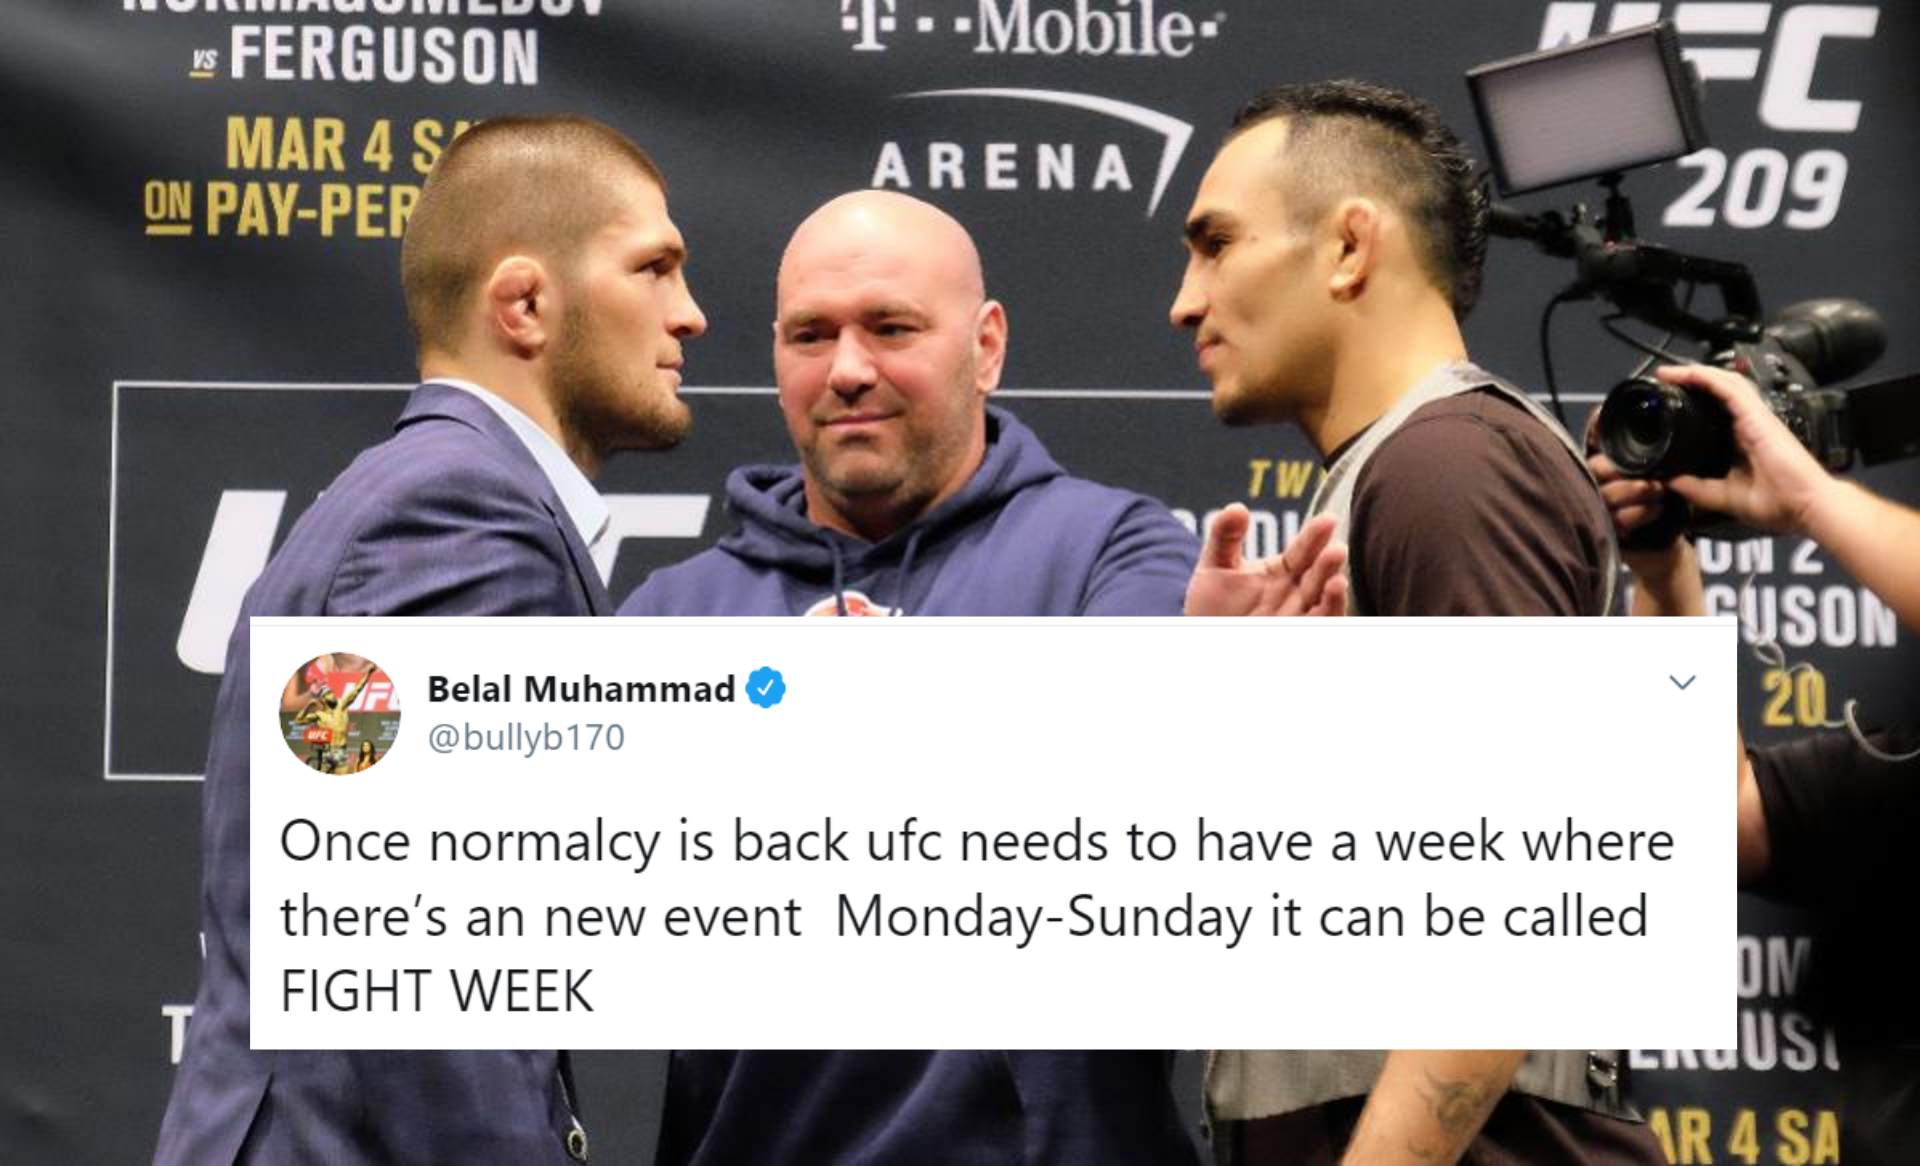 MMA world reacts to UFC events being cancelled due to Coronavirus scare - Coronavirus